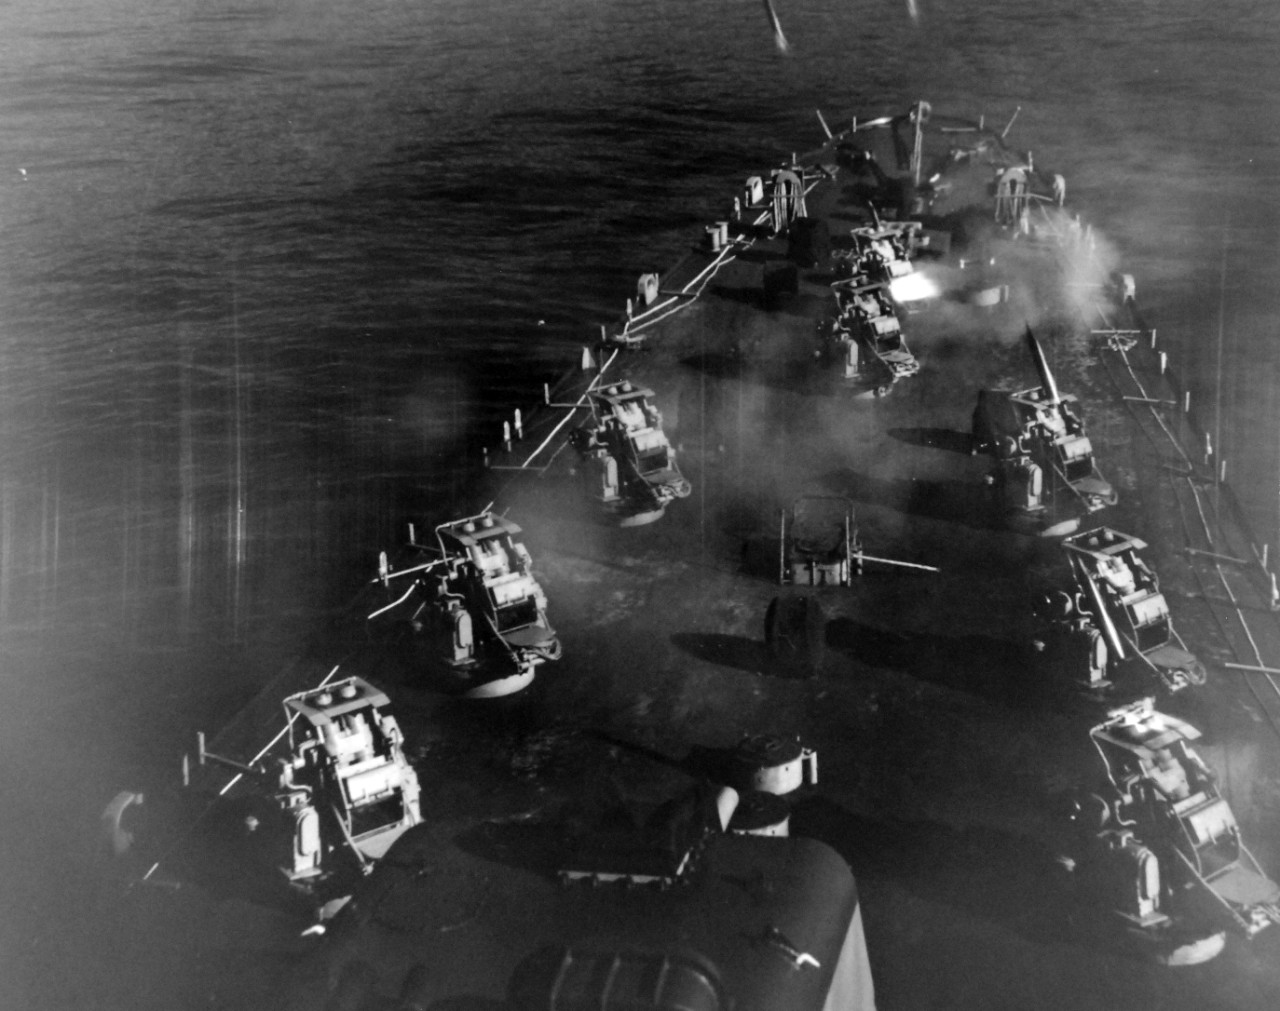 80-G-689755:  USS Carronade (IFS-1), 1955-59.  Firing rockets from deck.   Carronade was an Inshore Fire Support Ship, built to provide gunfire support to amphibious landings or operations close to shore. Official U.S. Navy Photograph, now in the collections of the National Archives.  (2017/11/01).  Photograph is extremely curved.